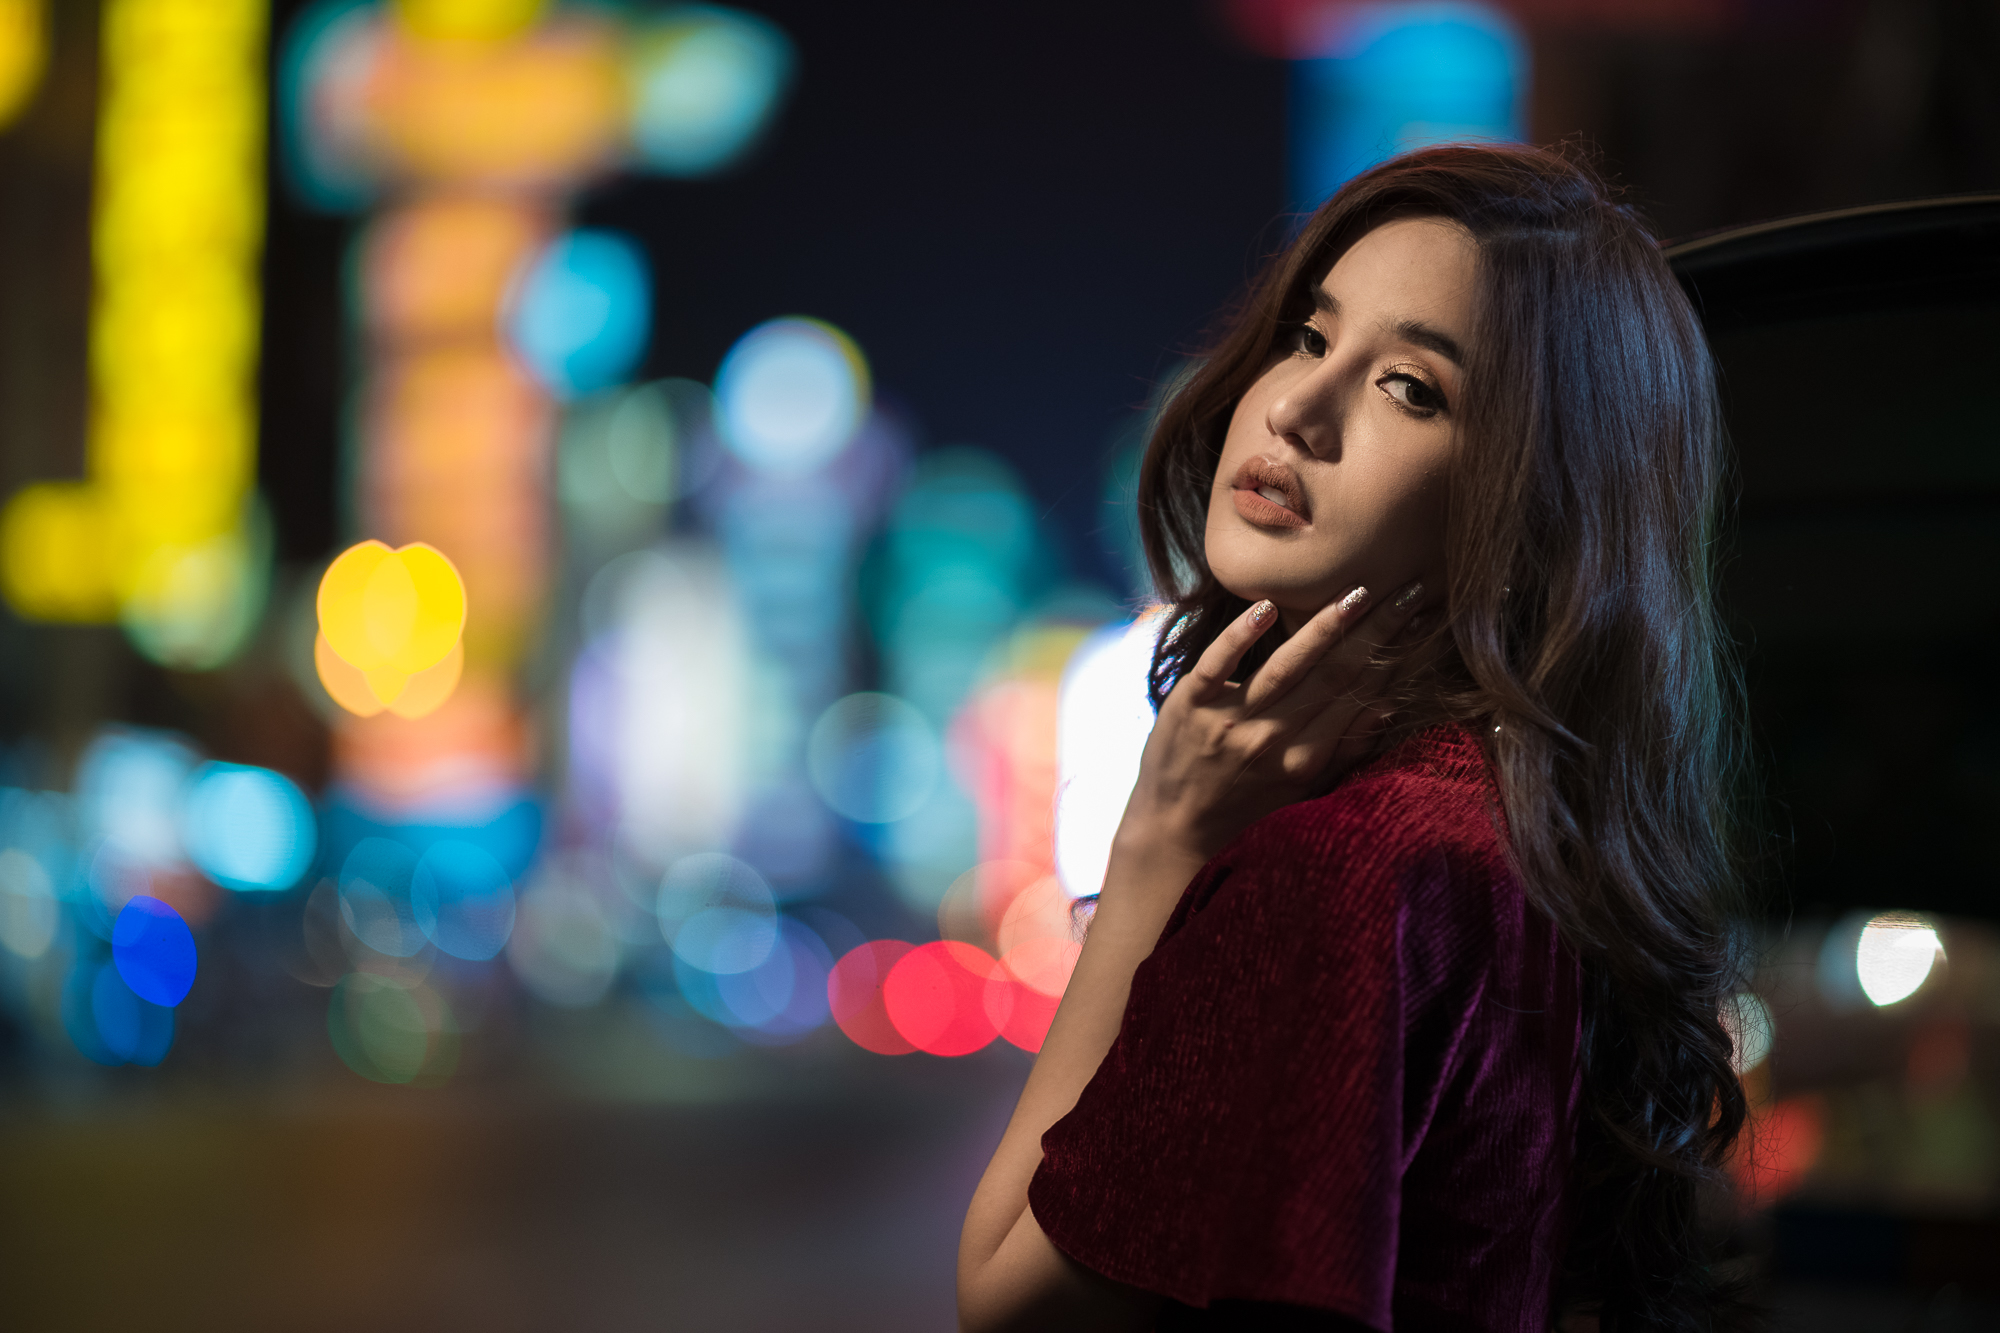 Demonstration picture from Leica Akademie Thailand Noctilux Low Light Workshop in Bangkok, Thailand. Shot at f/1.25 on Leica SL